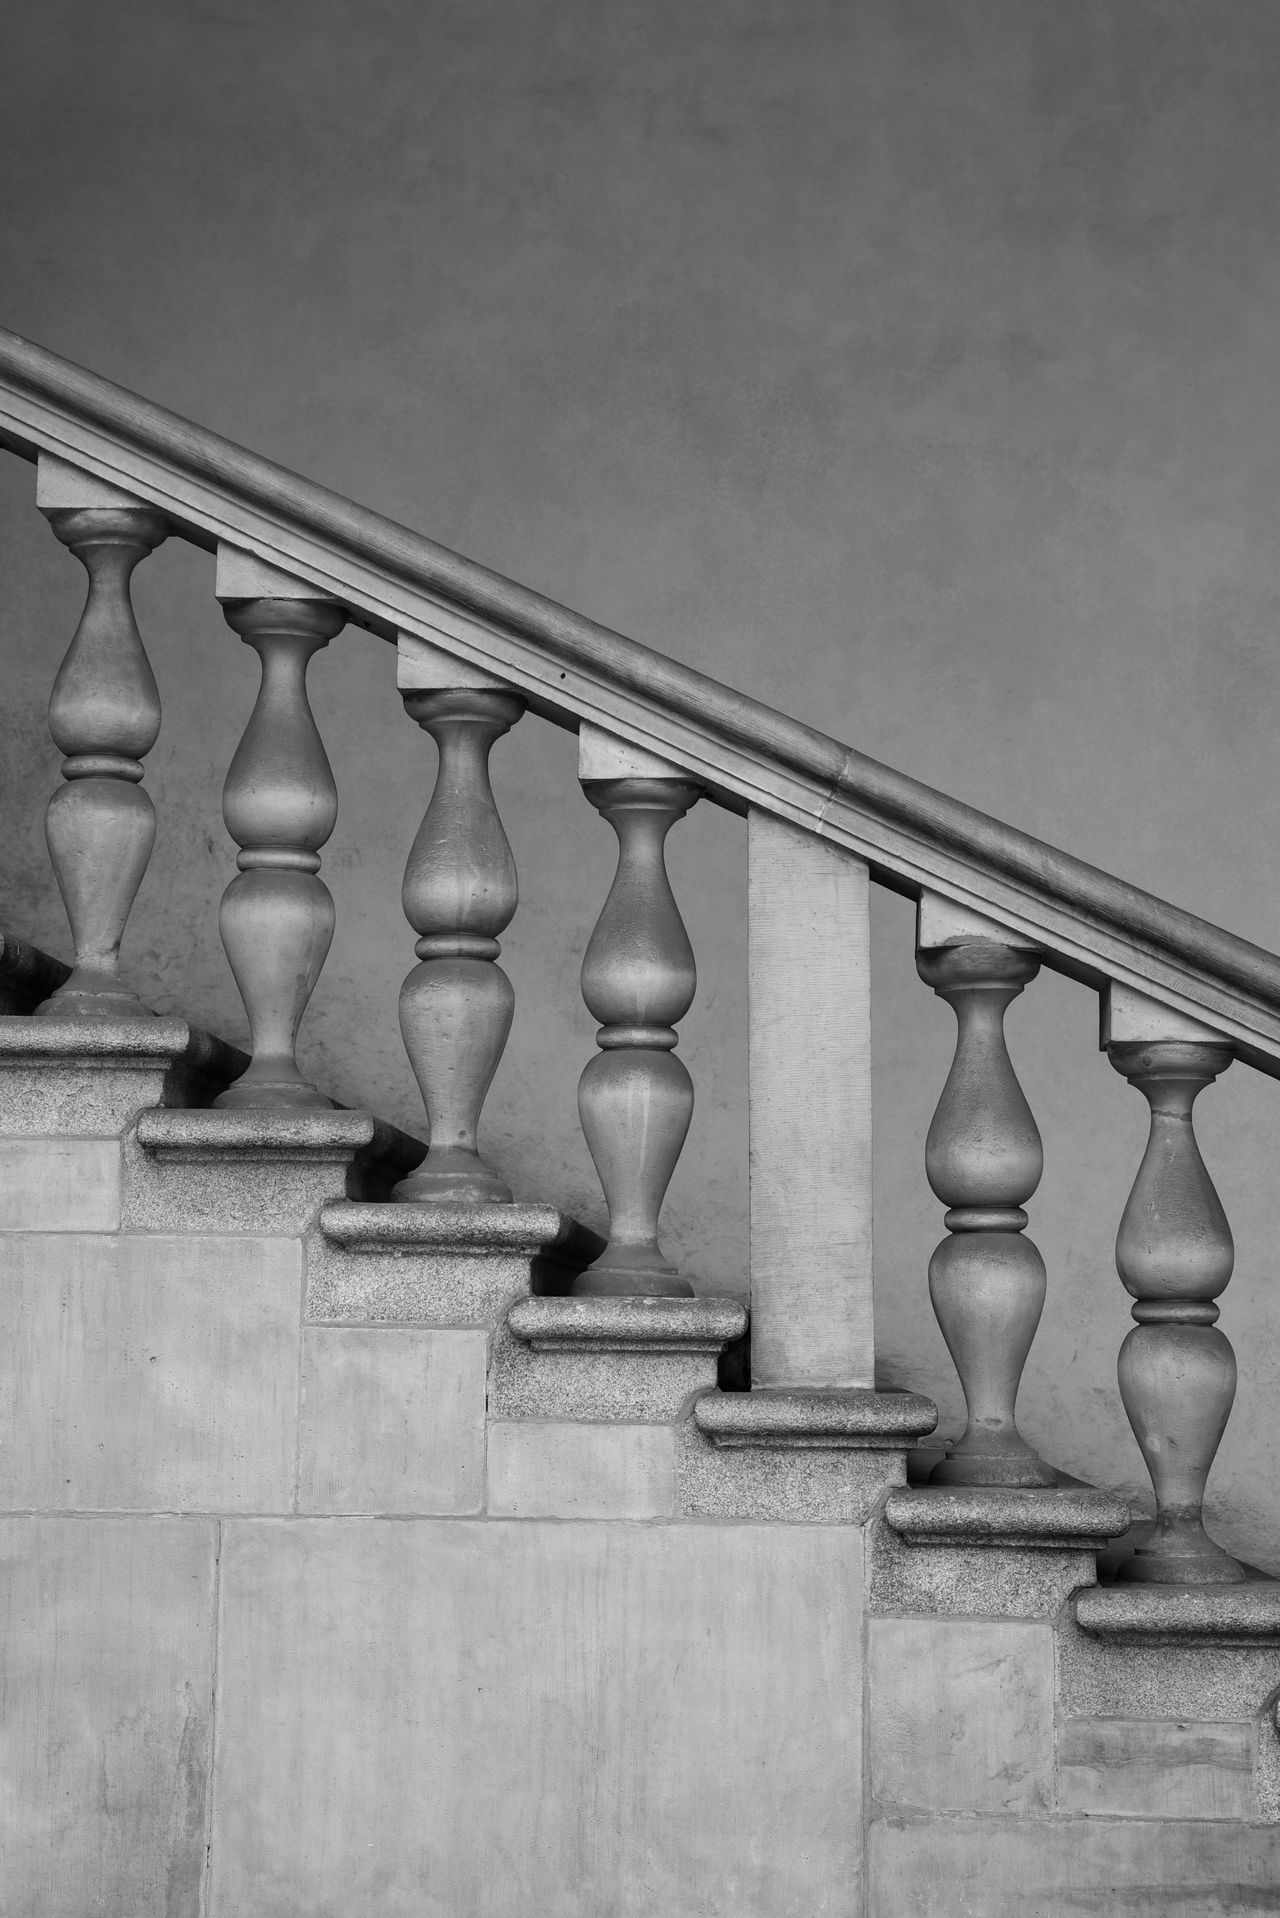 Architectural Column Architectural Detail Architecture Black & White Blackandwhite Blackandwhite Photography Close-up Krakow No People Staircase Stairs The Week On EyeEm